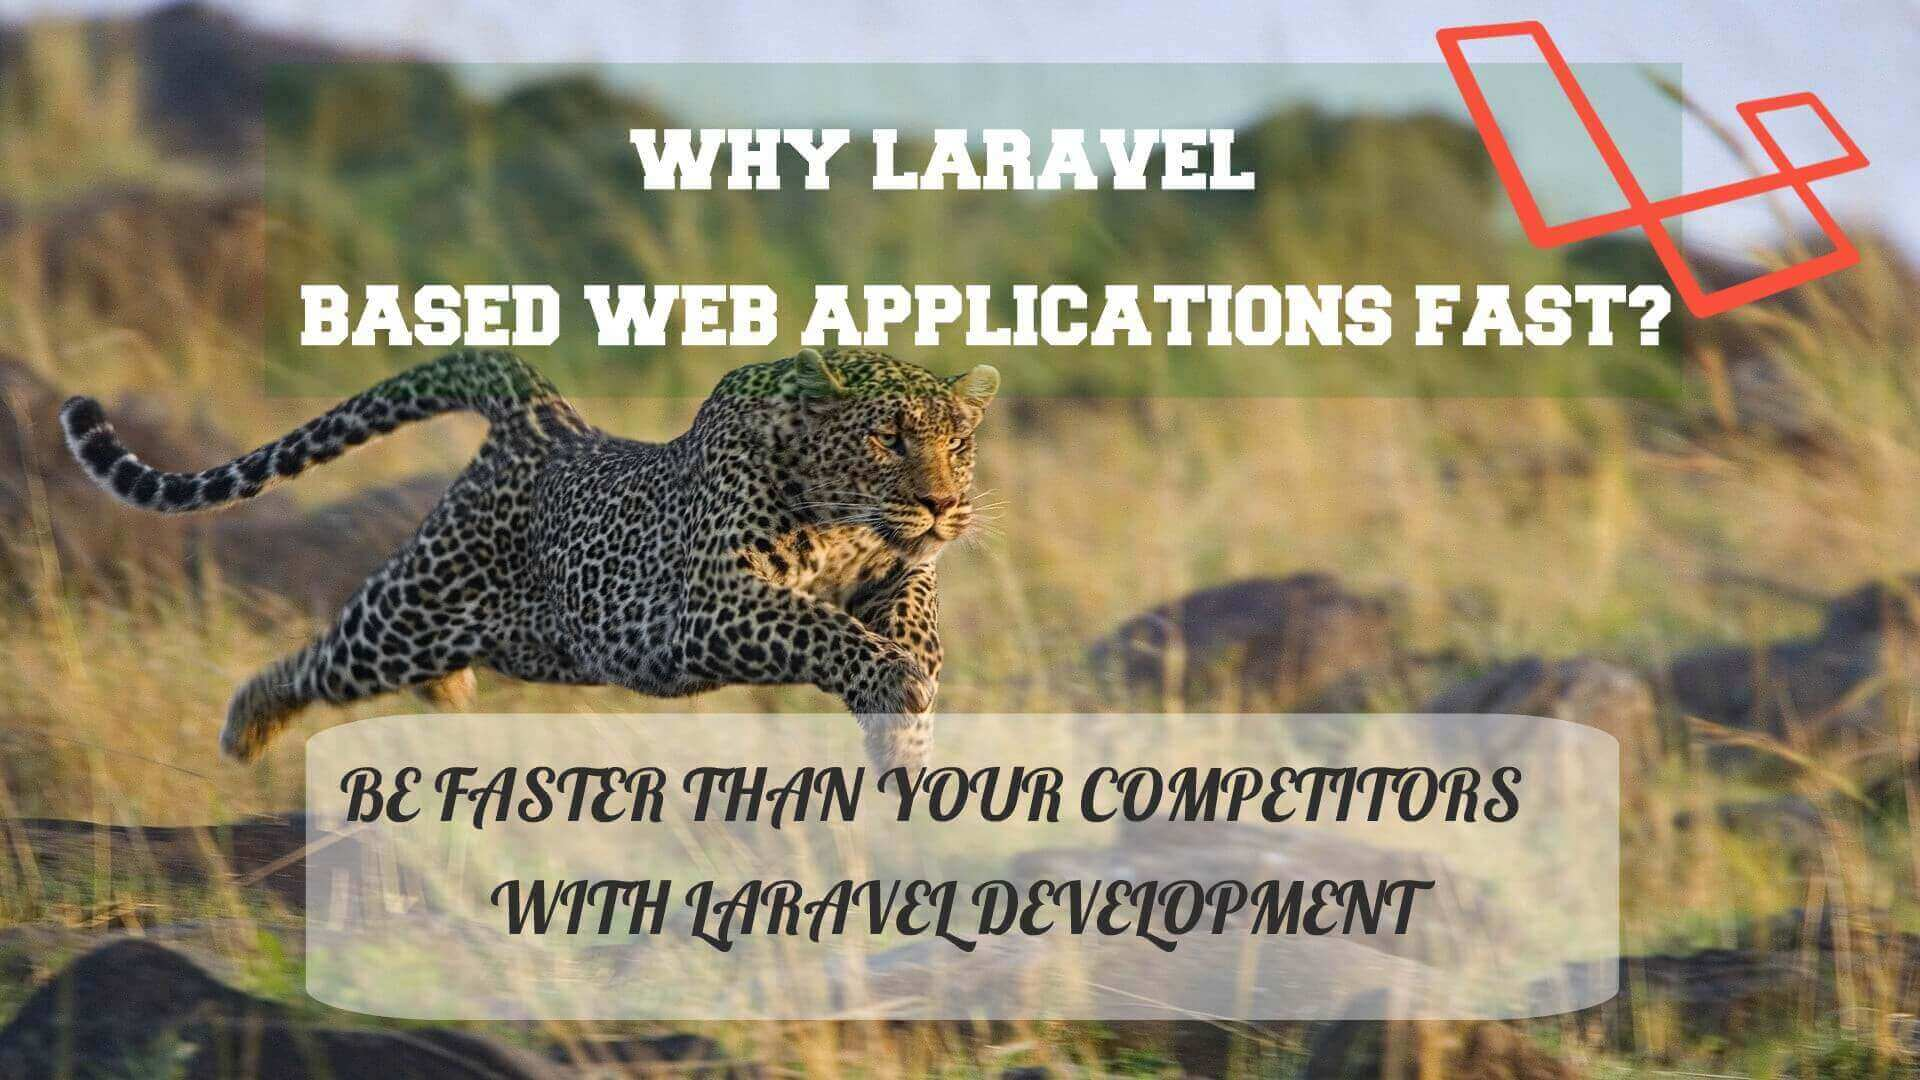 Why Laravel-Based Web Applications Fast?